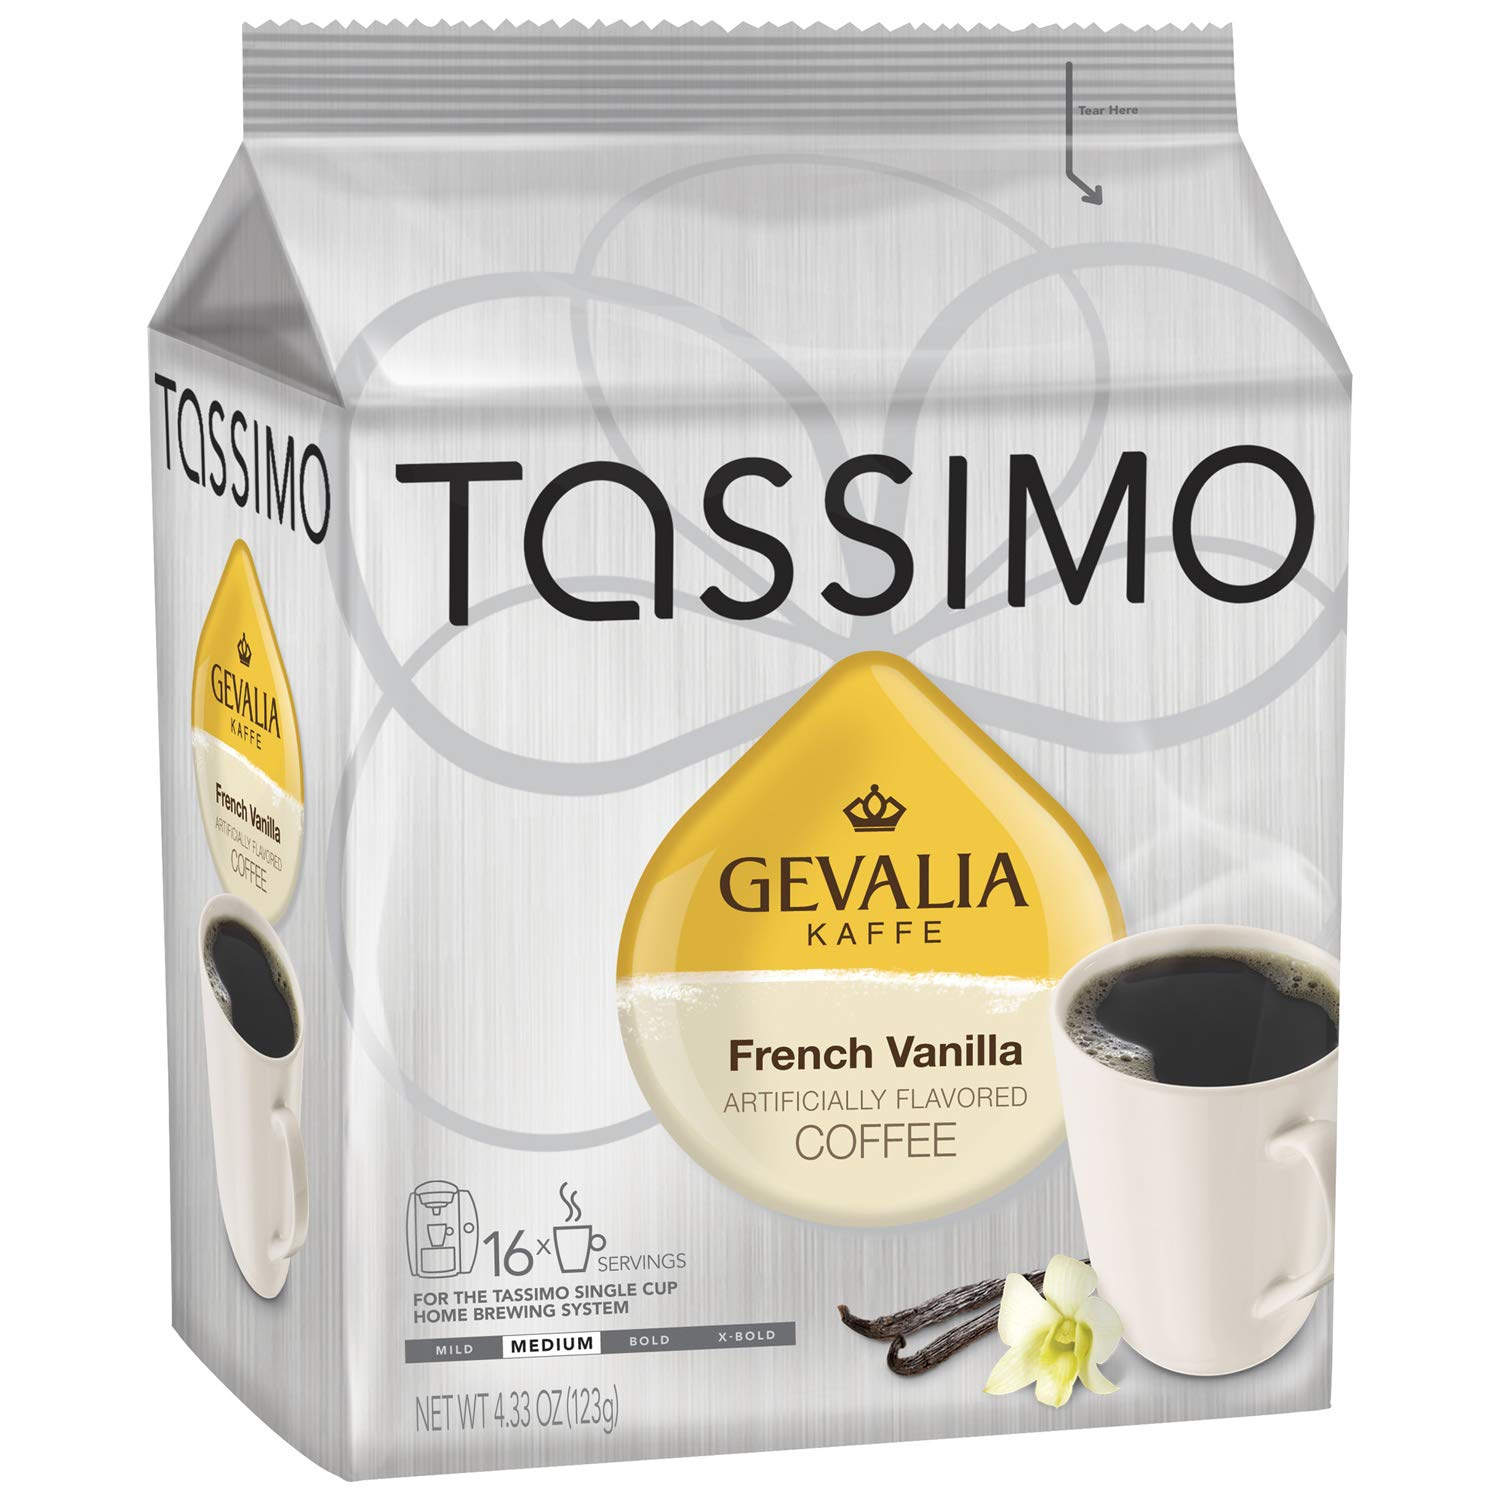 Tassimo Gevalia French Vanilla Medium Roast Coffee T-Discs for Tassimo Single Cup Home Brewing Systems, 16 ct Pack